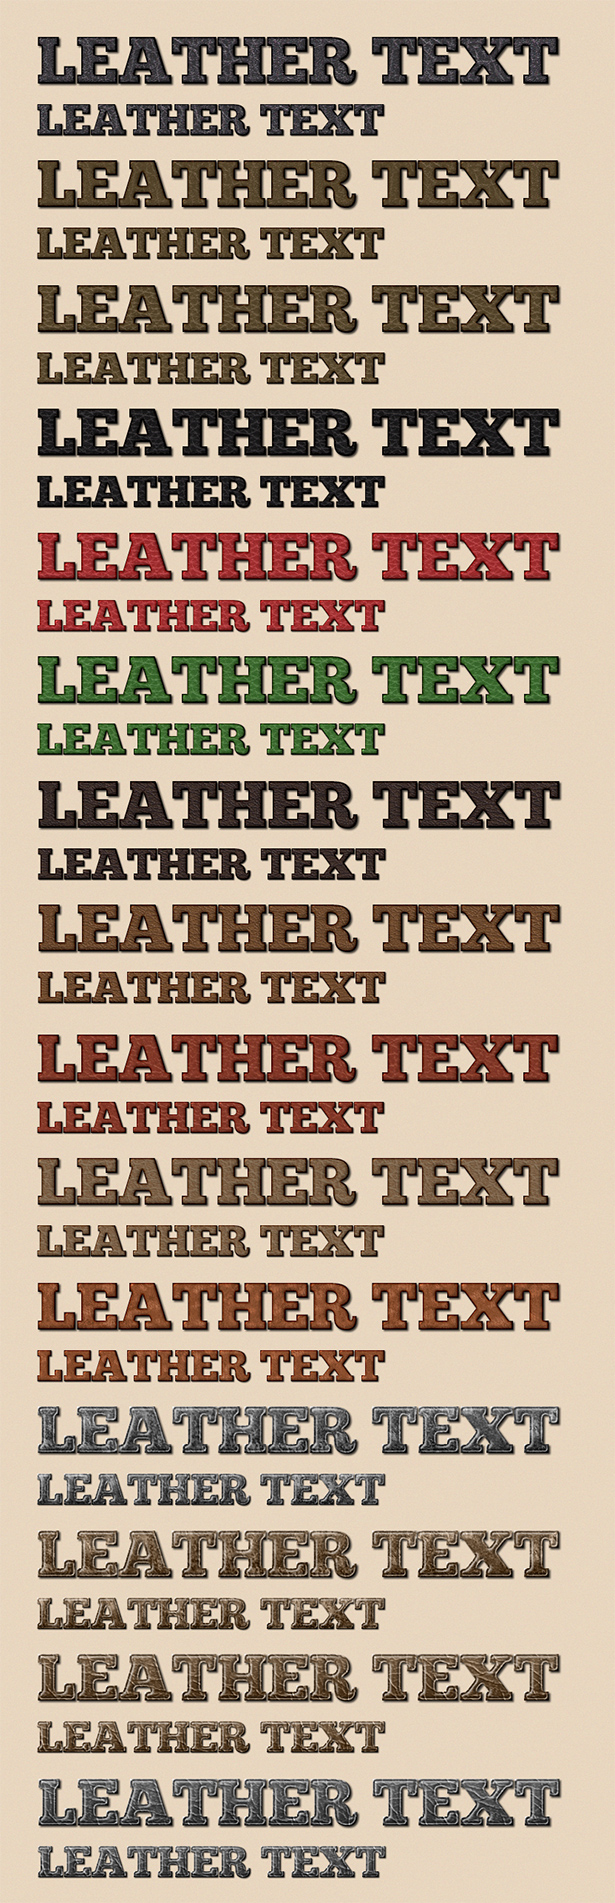 Leather Text Styles